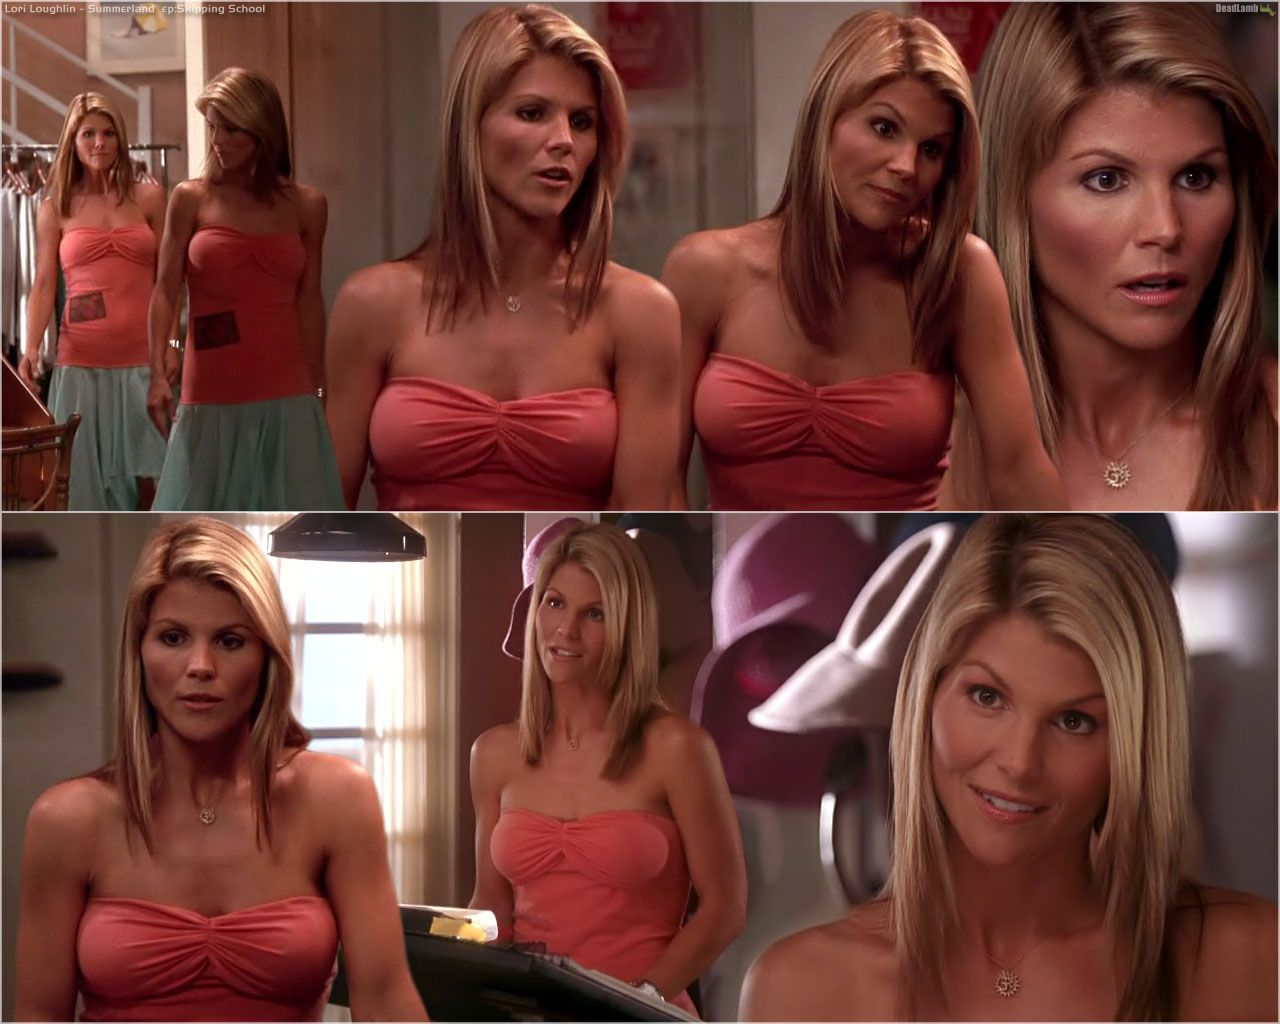 Lori loughlin bikini summerland